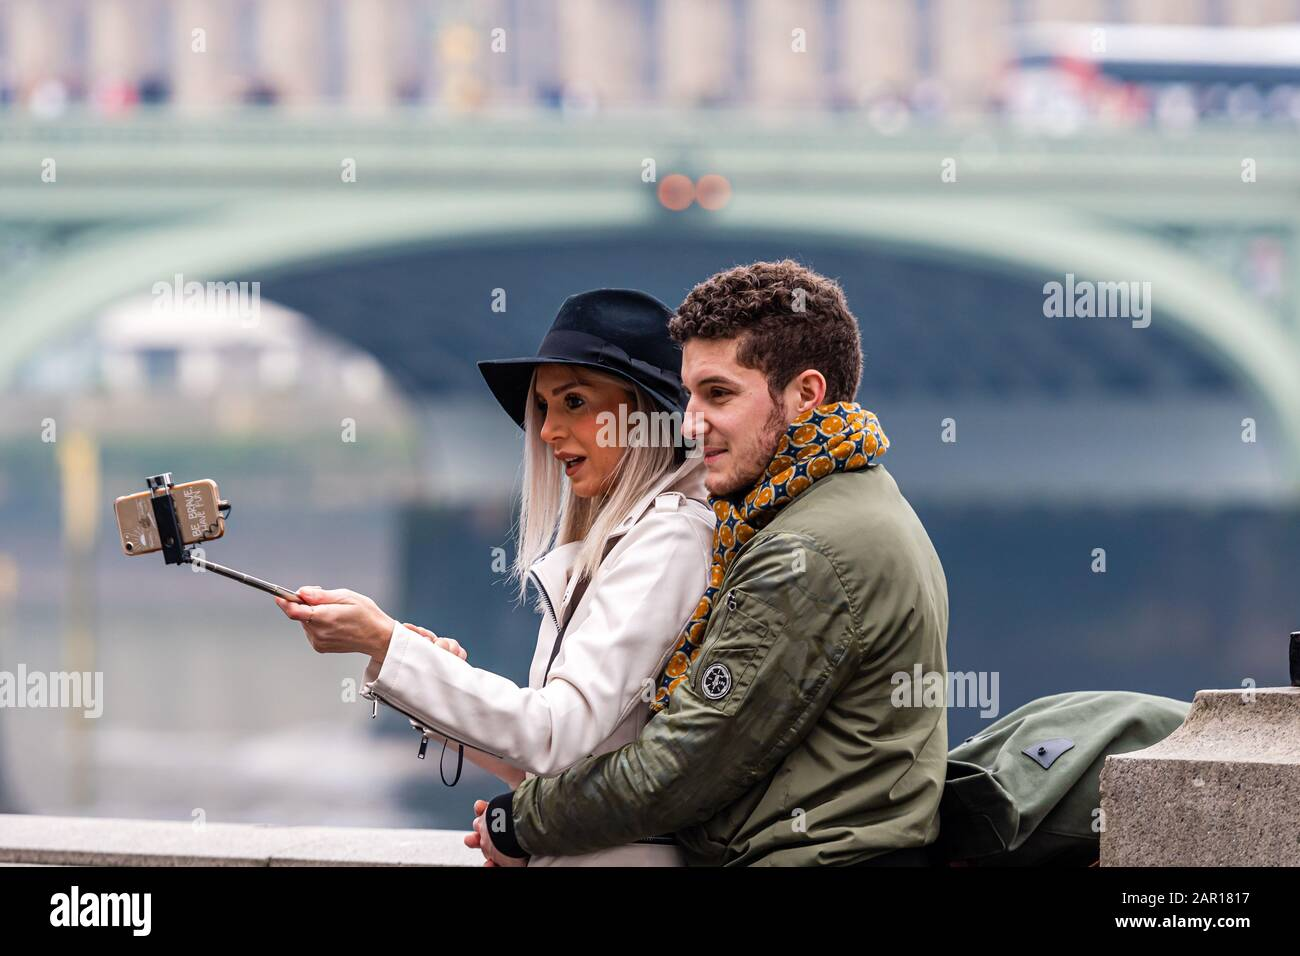 London, UK - January 1, 2020: A couple of young people take selfies with a London skyline in the background Stock Photo